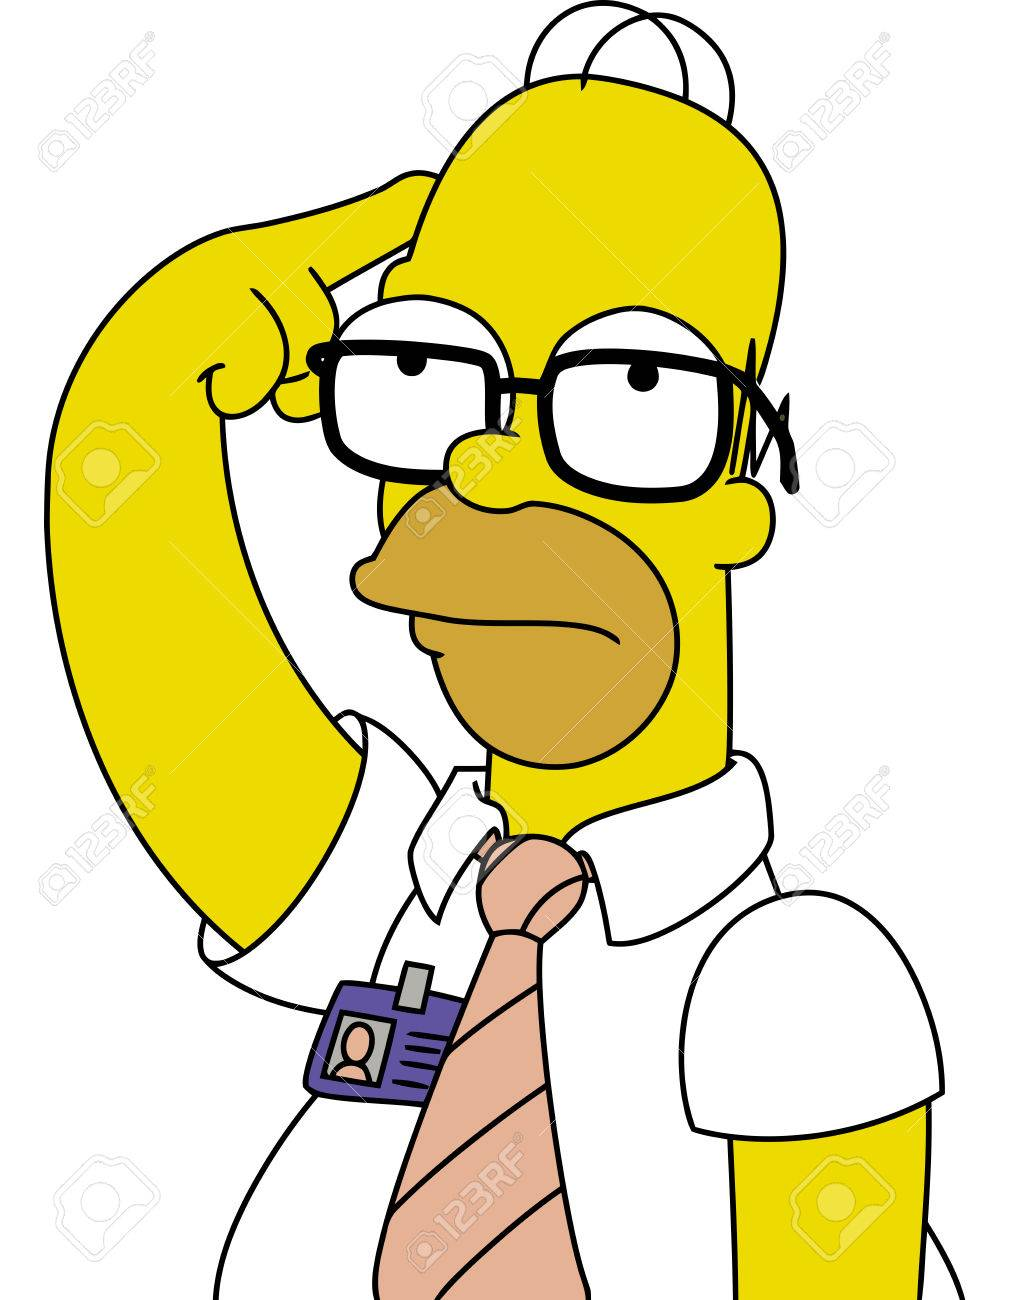 Homer Simpson pictures Simpsons Crazy